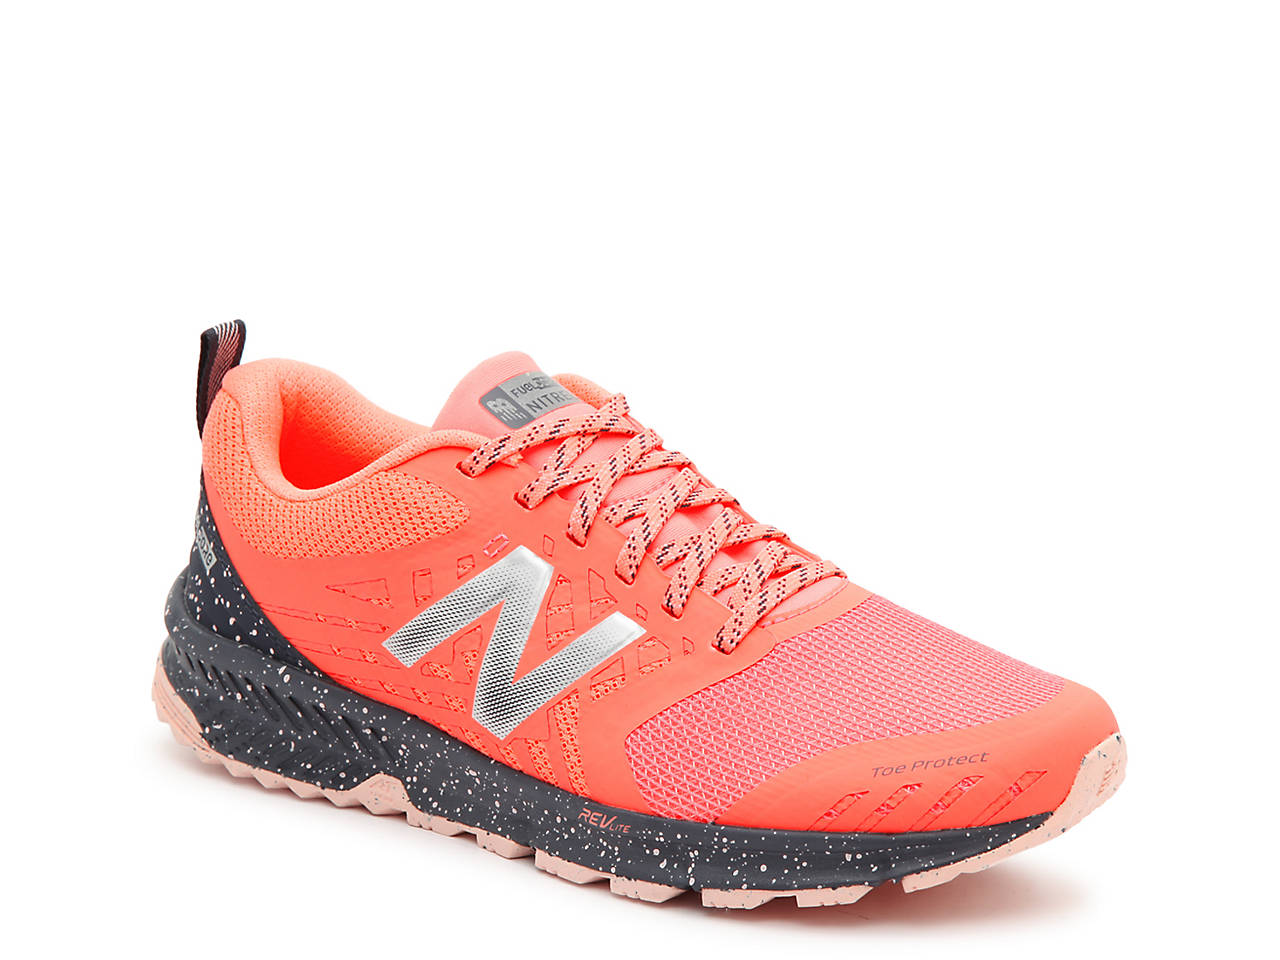 good looking casual shoes cheapest price FuelCore Nitrel Lightweight Running Shoe - Women's